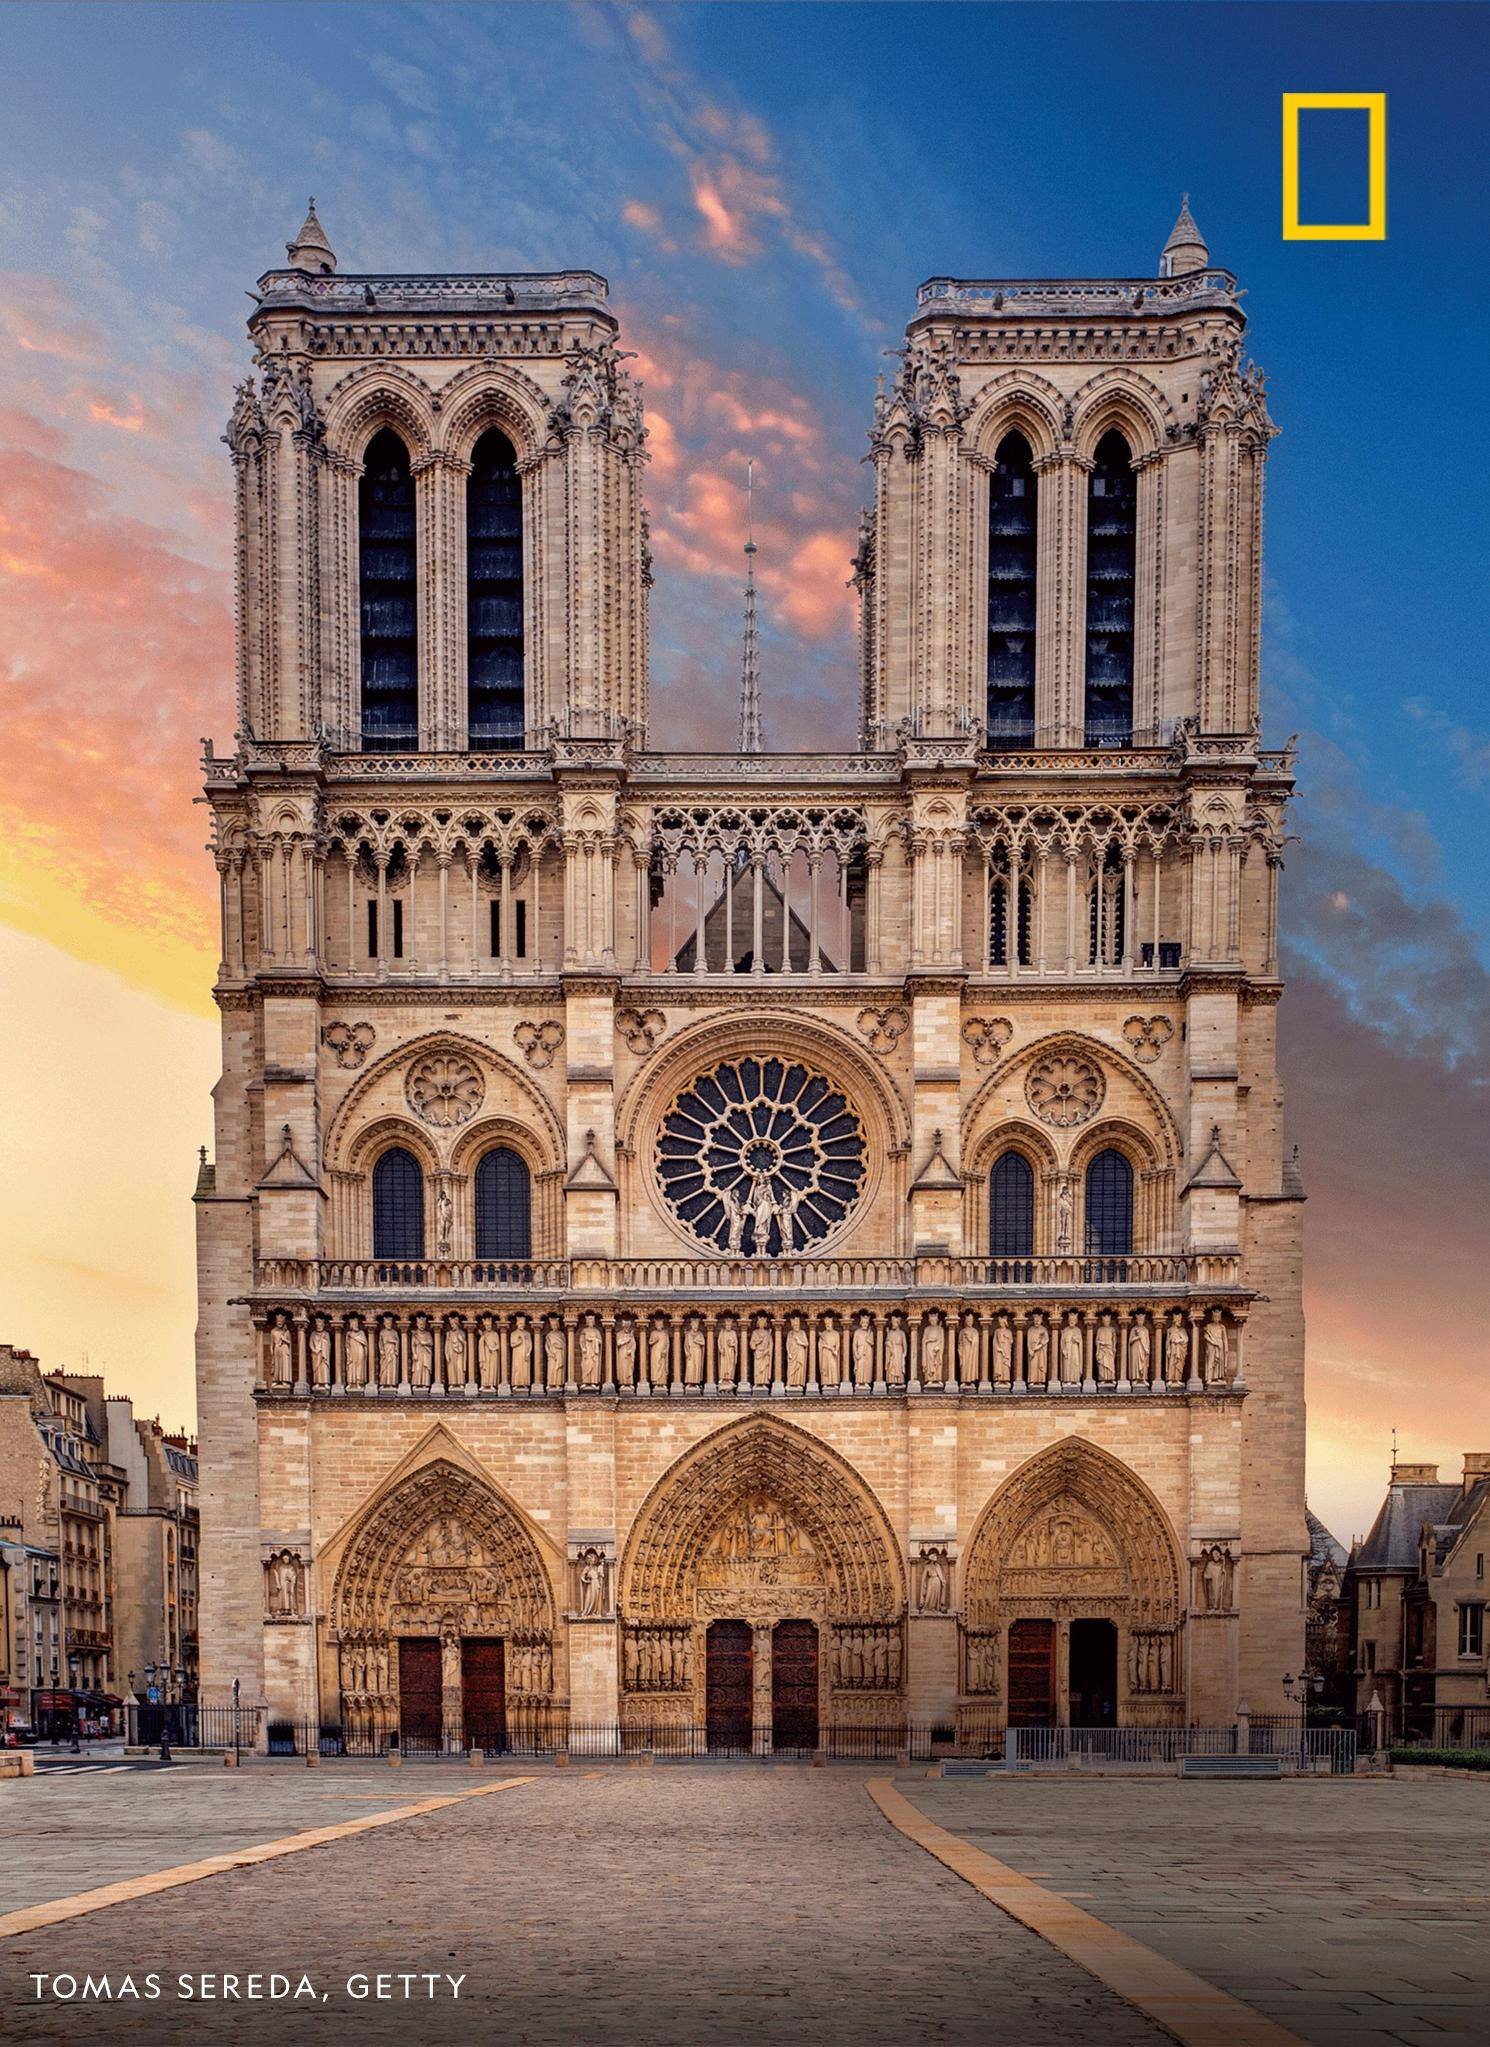 Notre Dame became an urban icon and the backdrop against which generations of Parisians lived their lives. Today, a devastating fire threatens to claim more than 800 years of history. https://on.natgeo.com/2IEN14Z